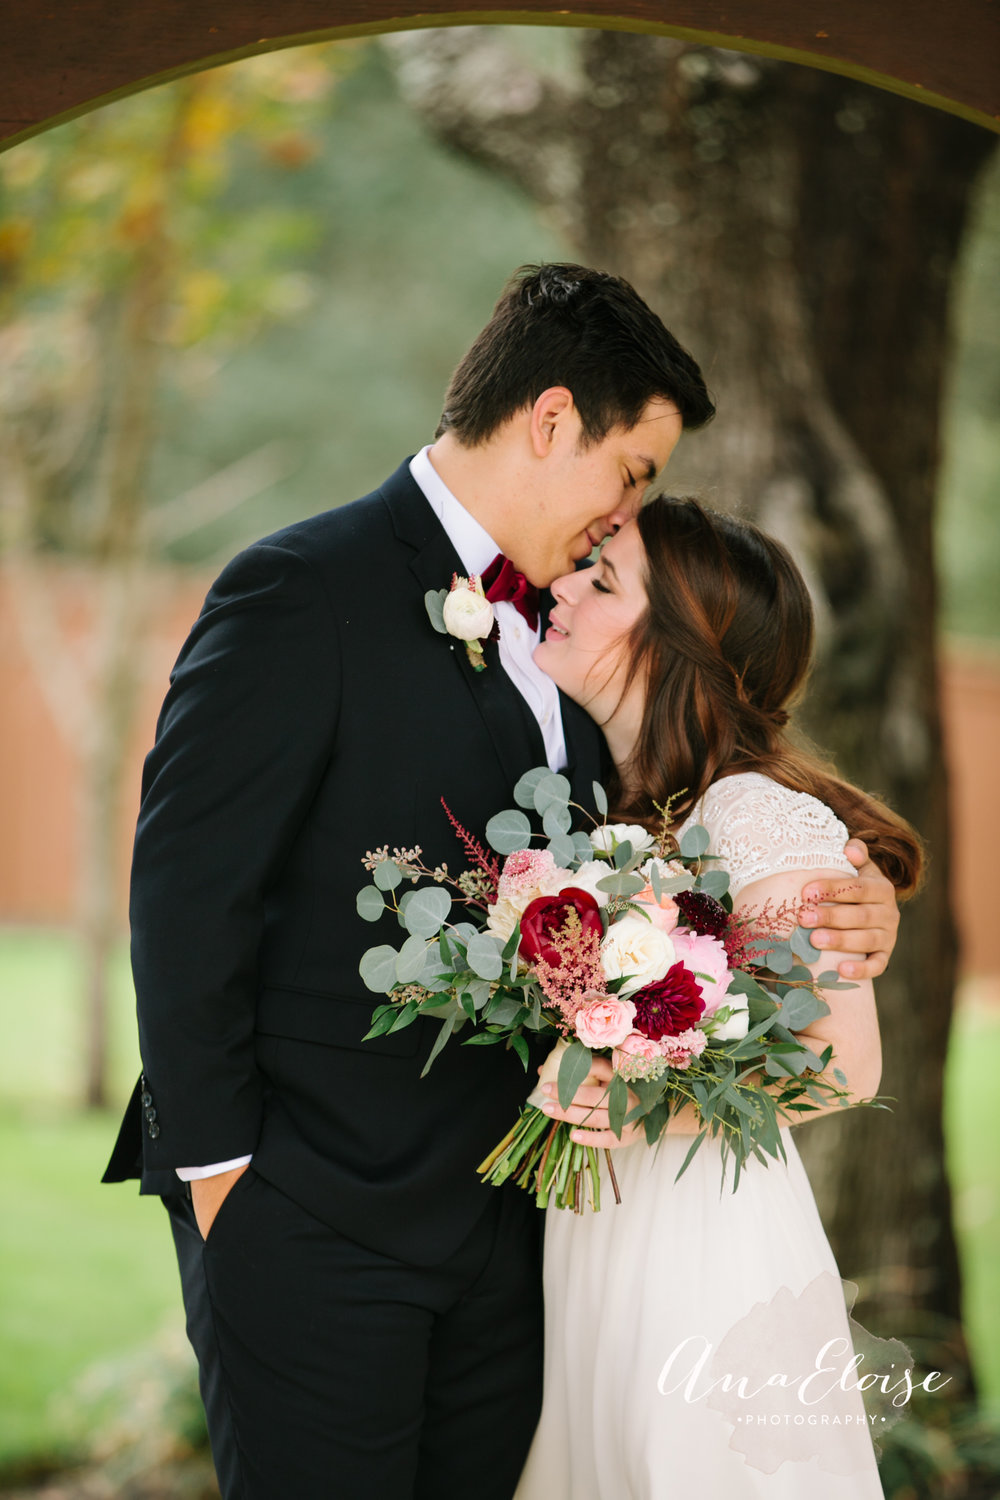 Ana Eloise Photography weddings dallas fort worth